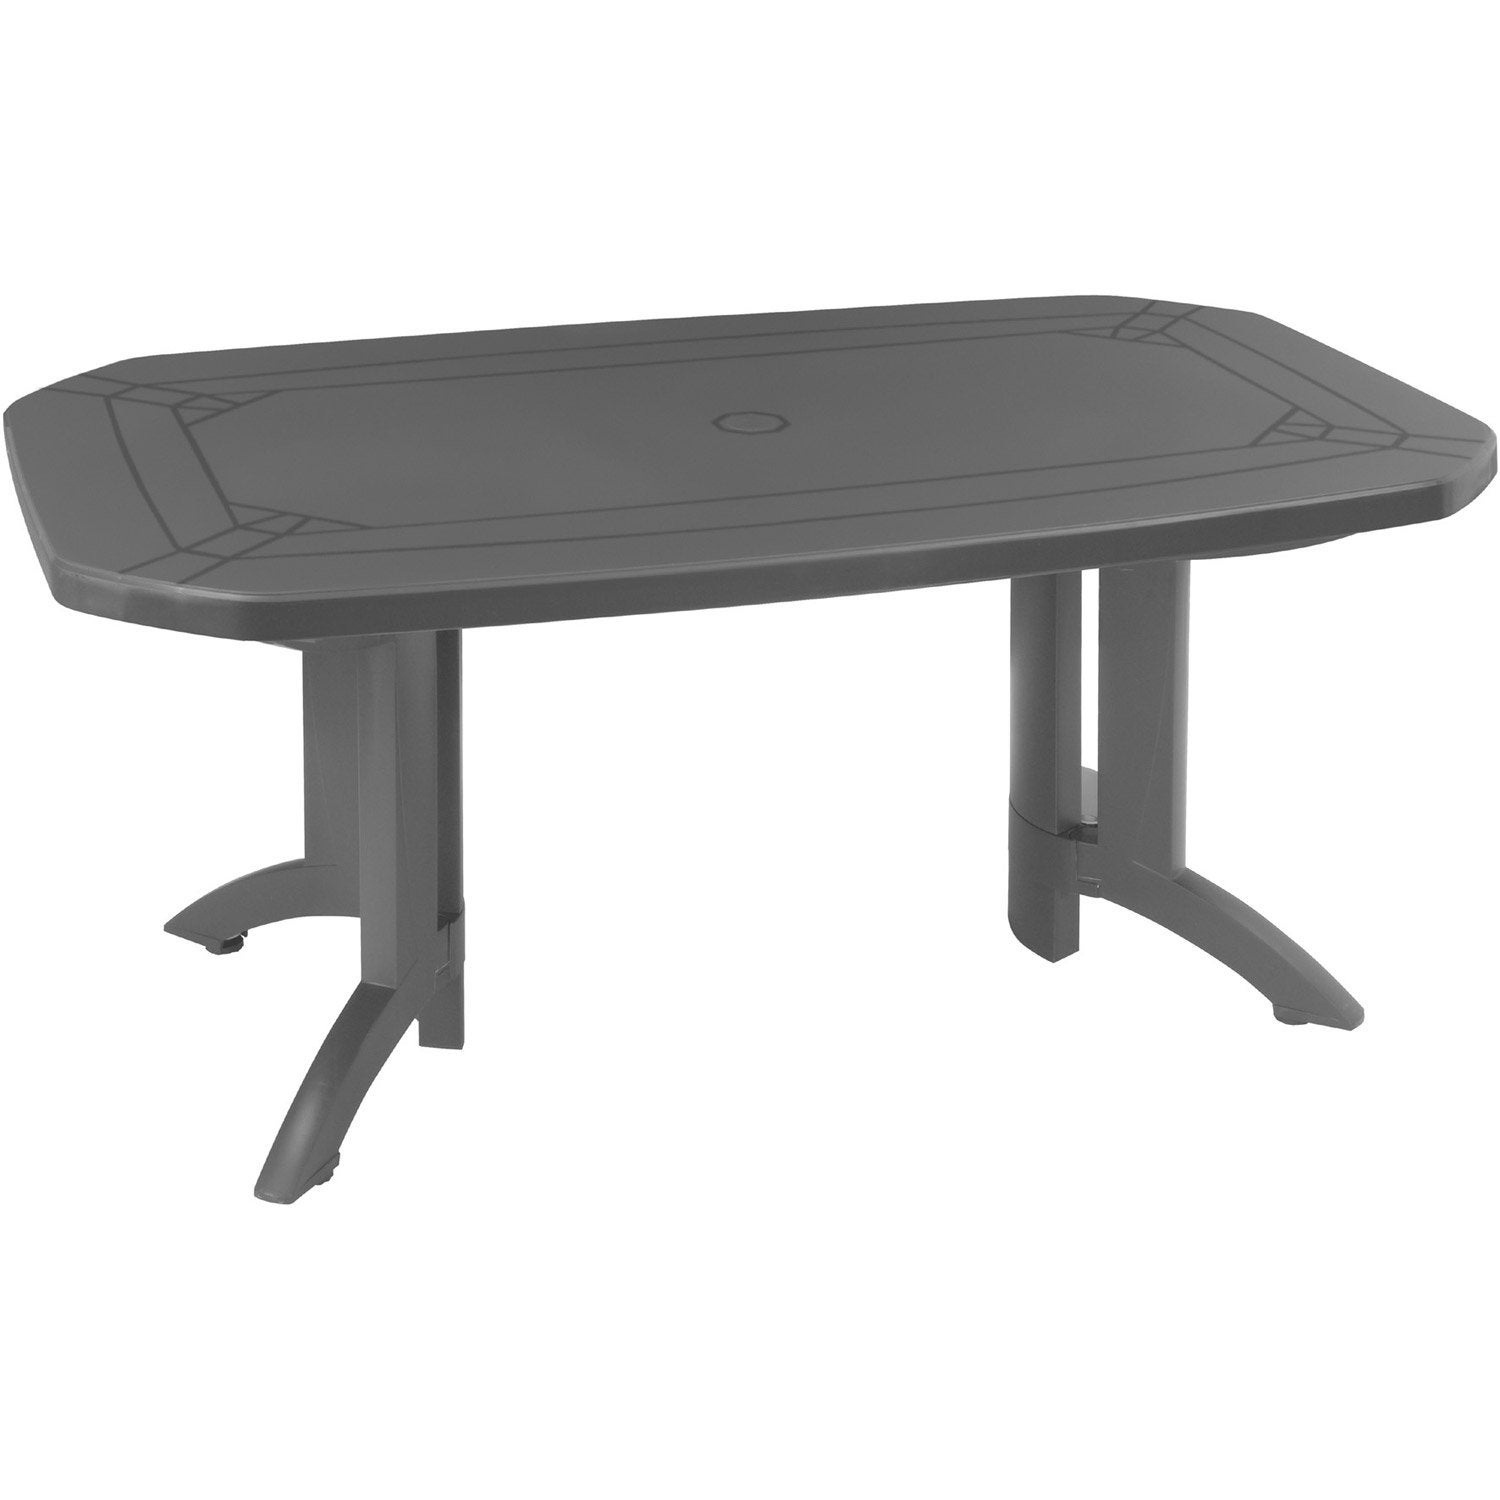 Table De Jardin Grosfillex V Ga Rectangulaire Anthracite 6 Personnes Leroy Merlin